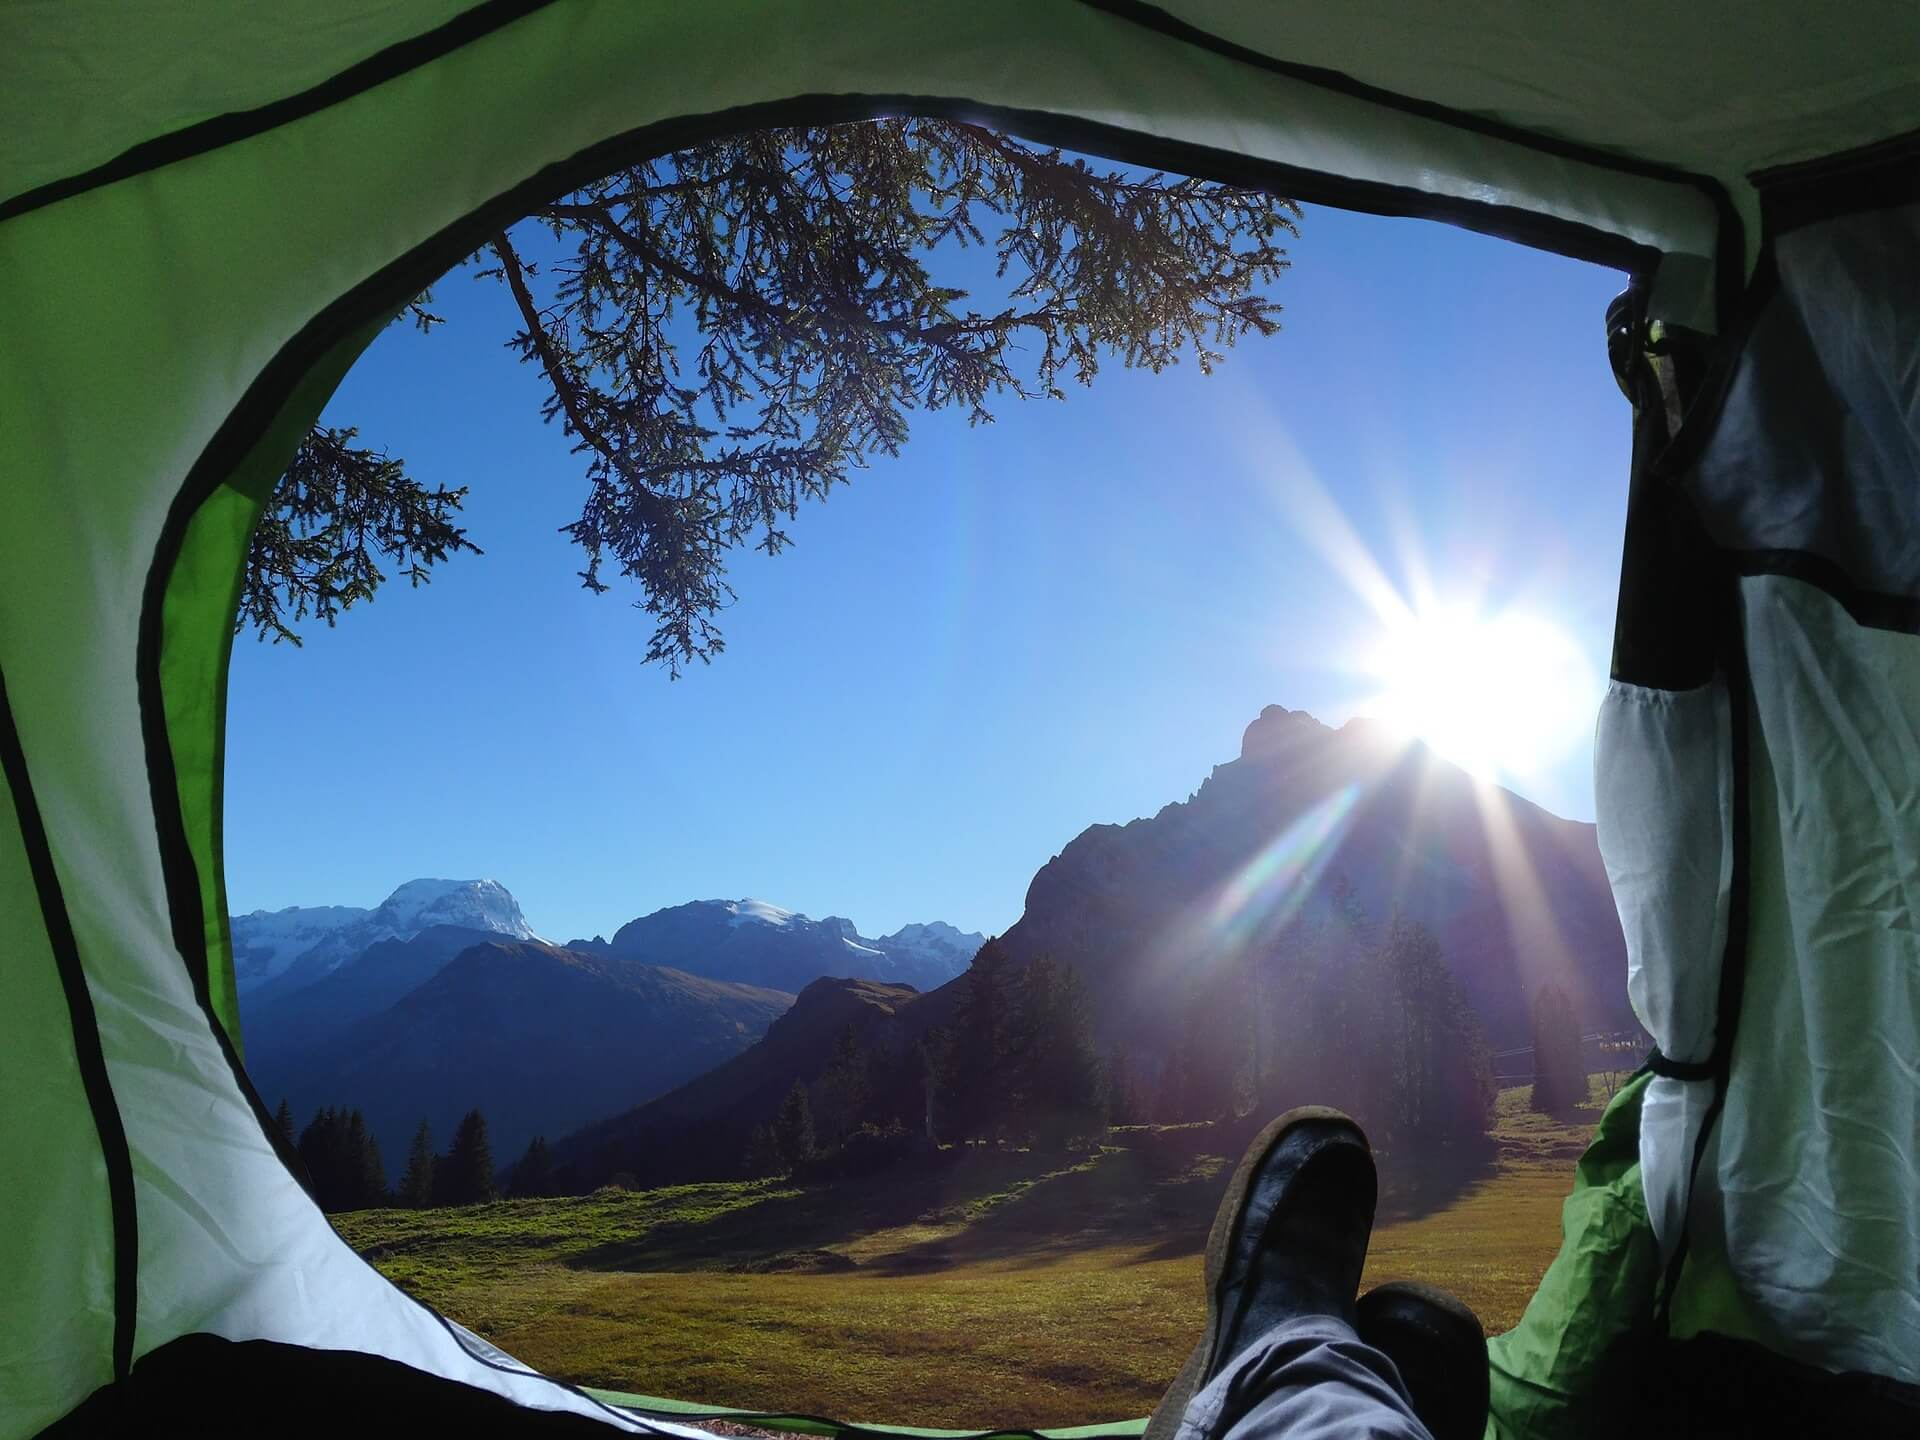 View of nature and mountains from a tent door.